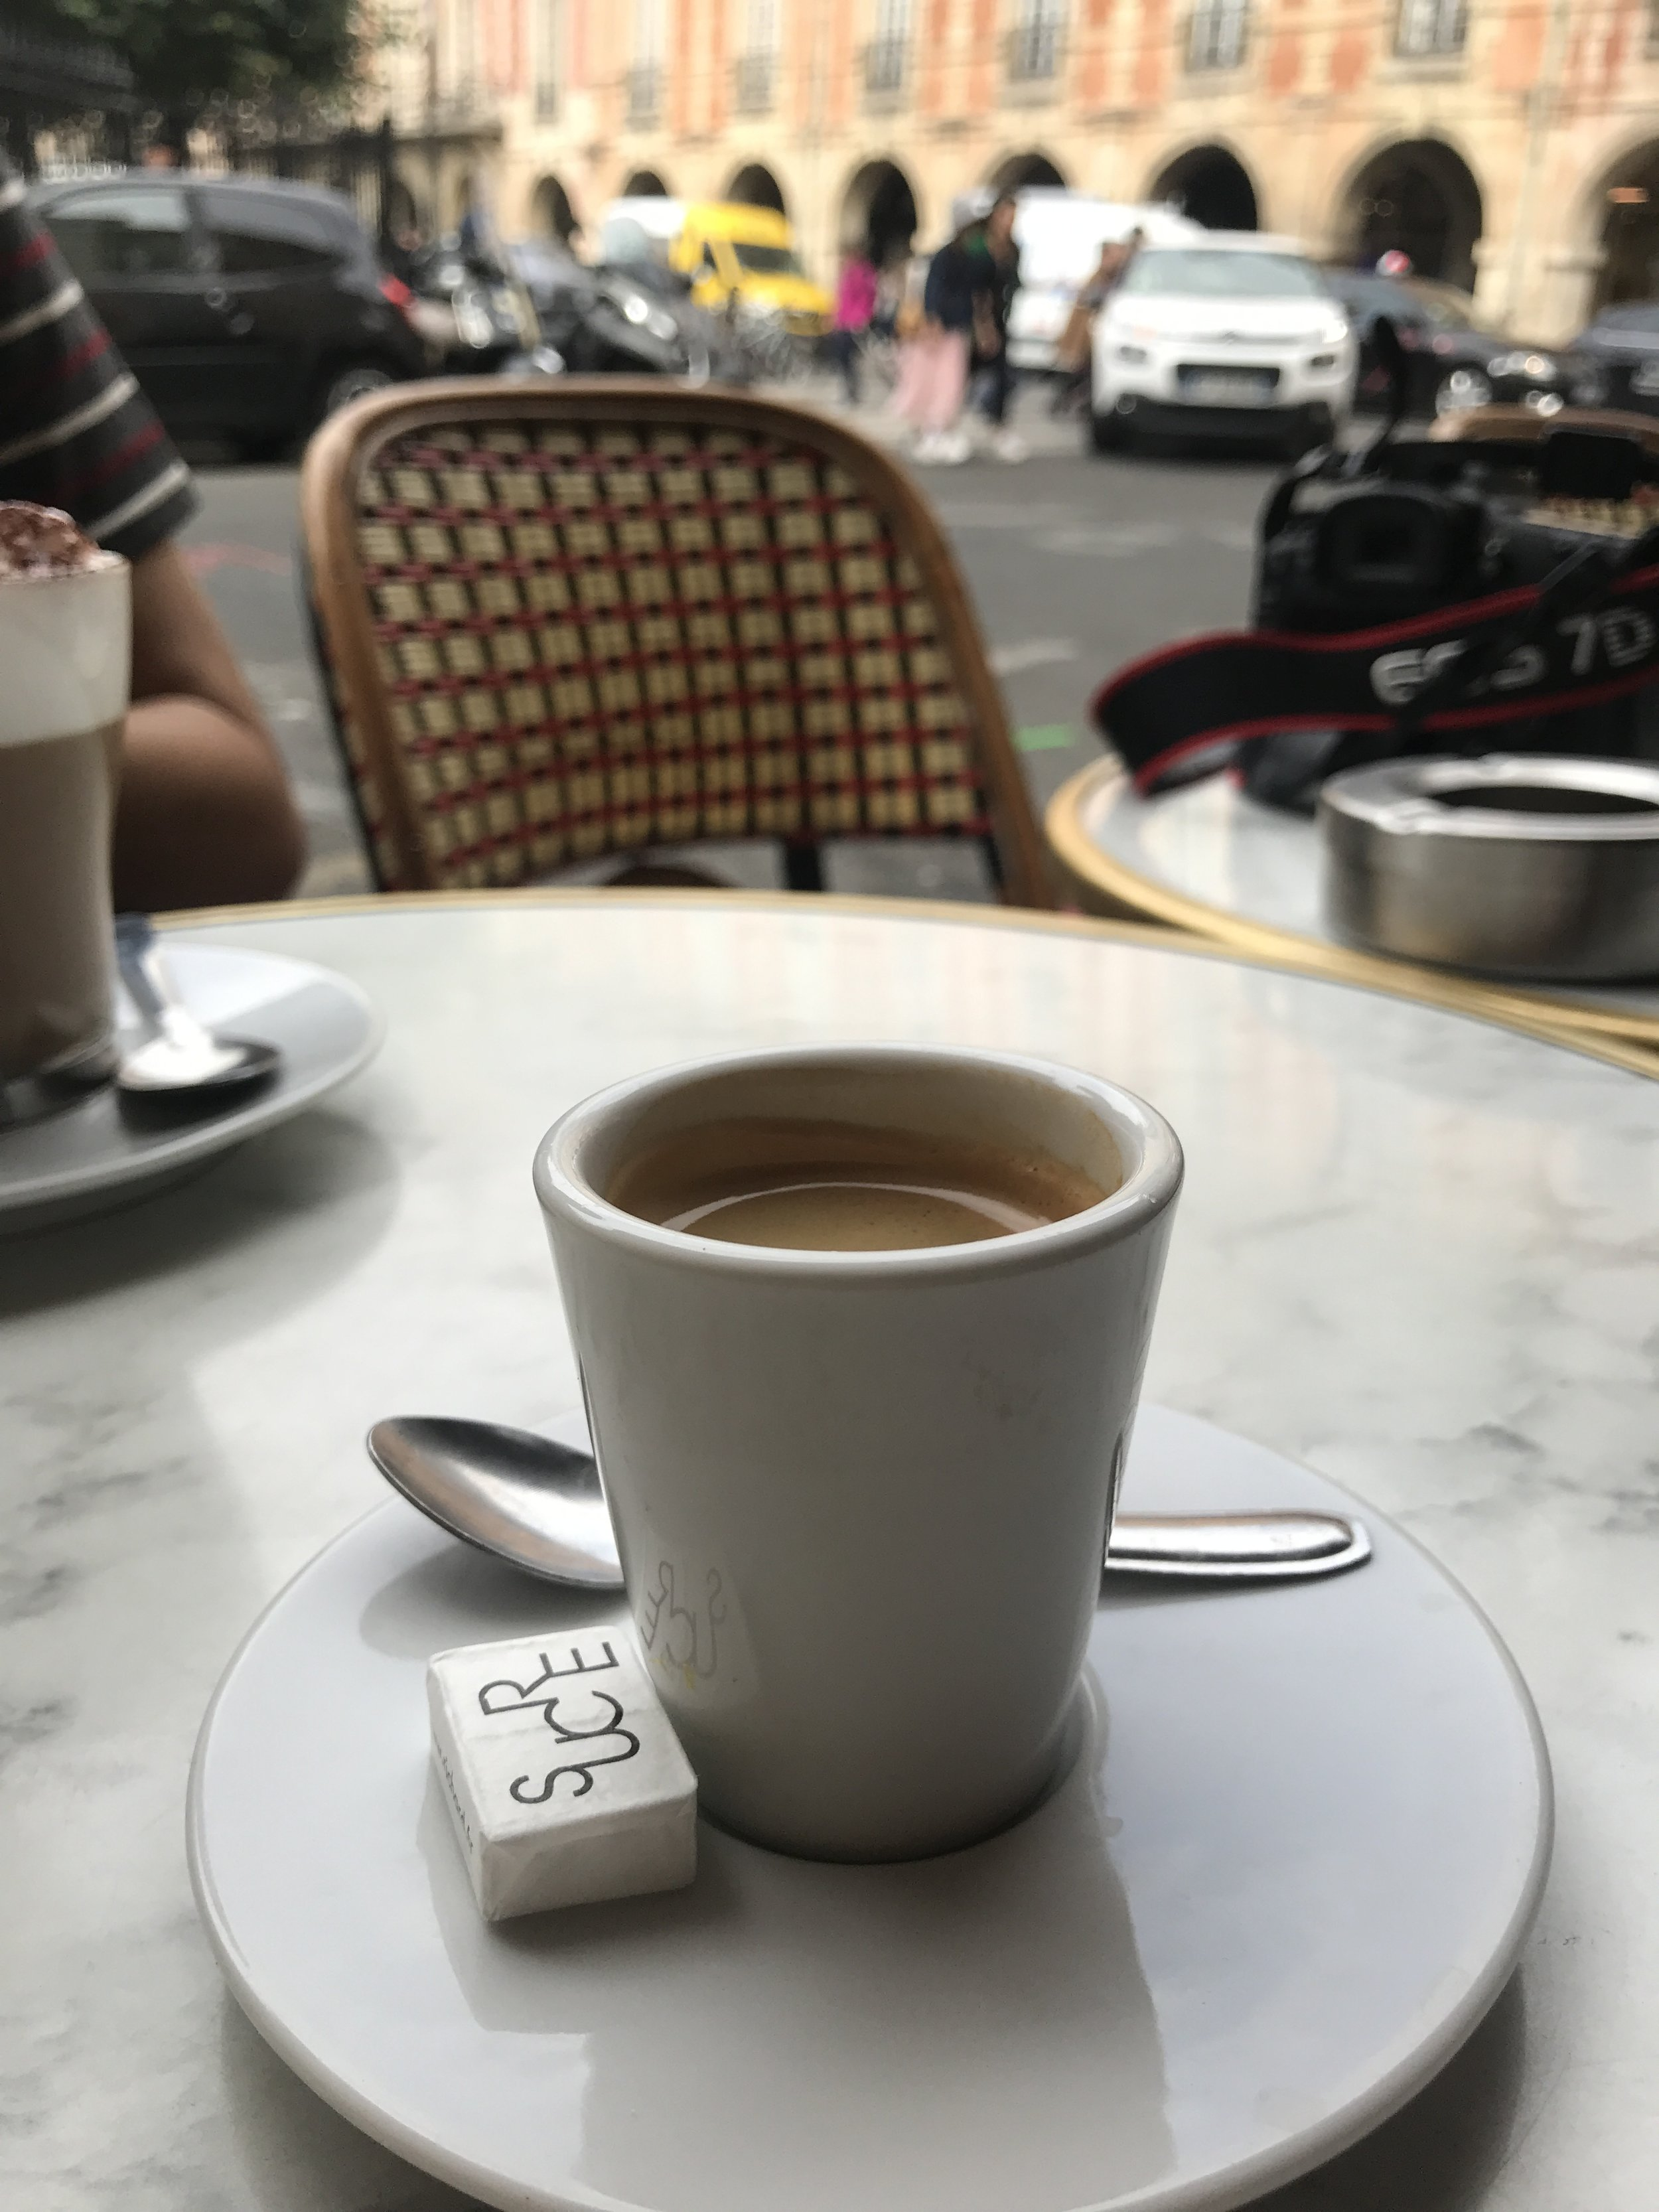 Enjoying an espresso across from Place de Vosges. Pro Tip - pack juice-box sized soy/almond/oat/cashew milks in your checked luggage to keep on hand. I put a splash into all my espresso drinks when needed.